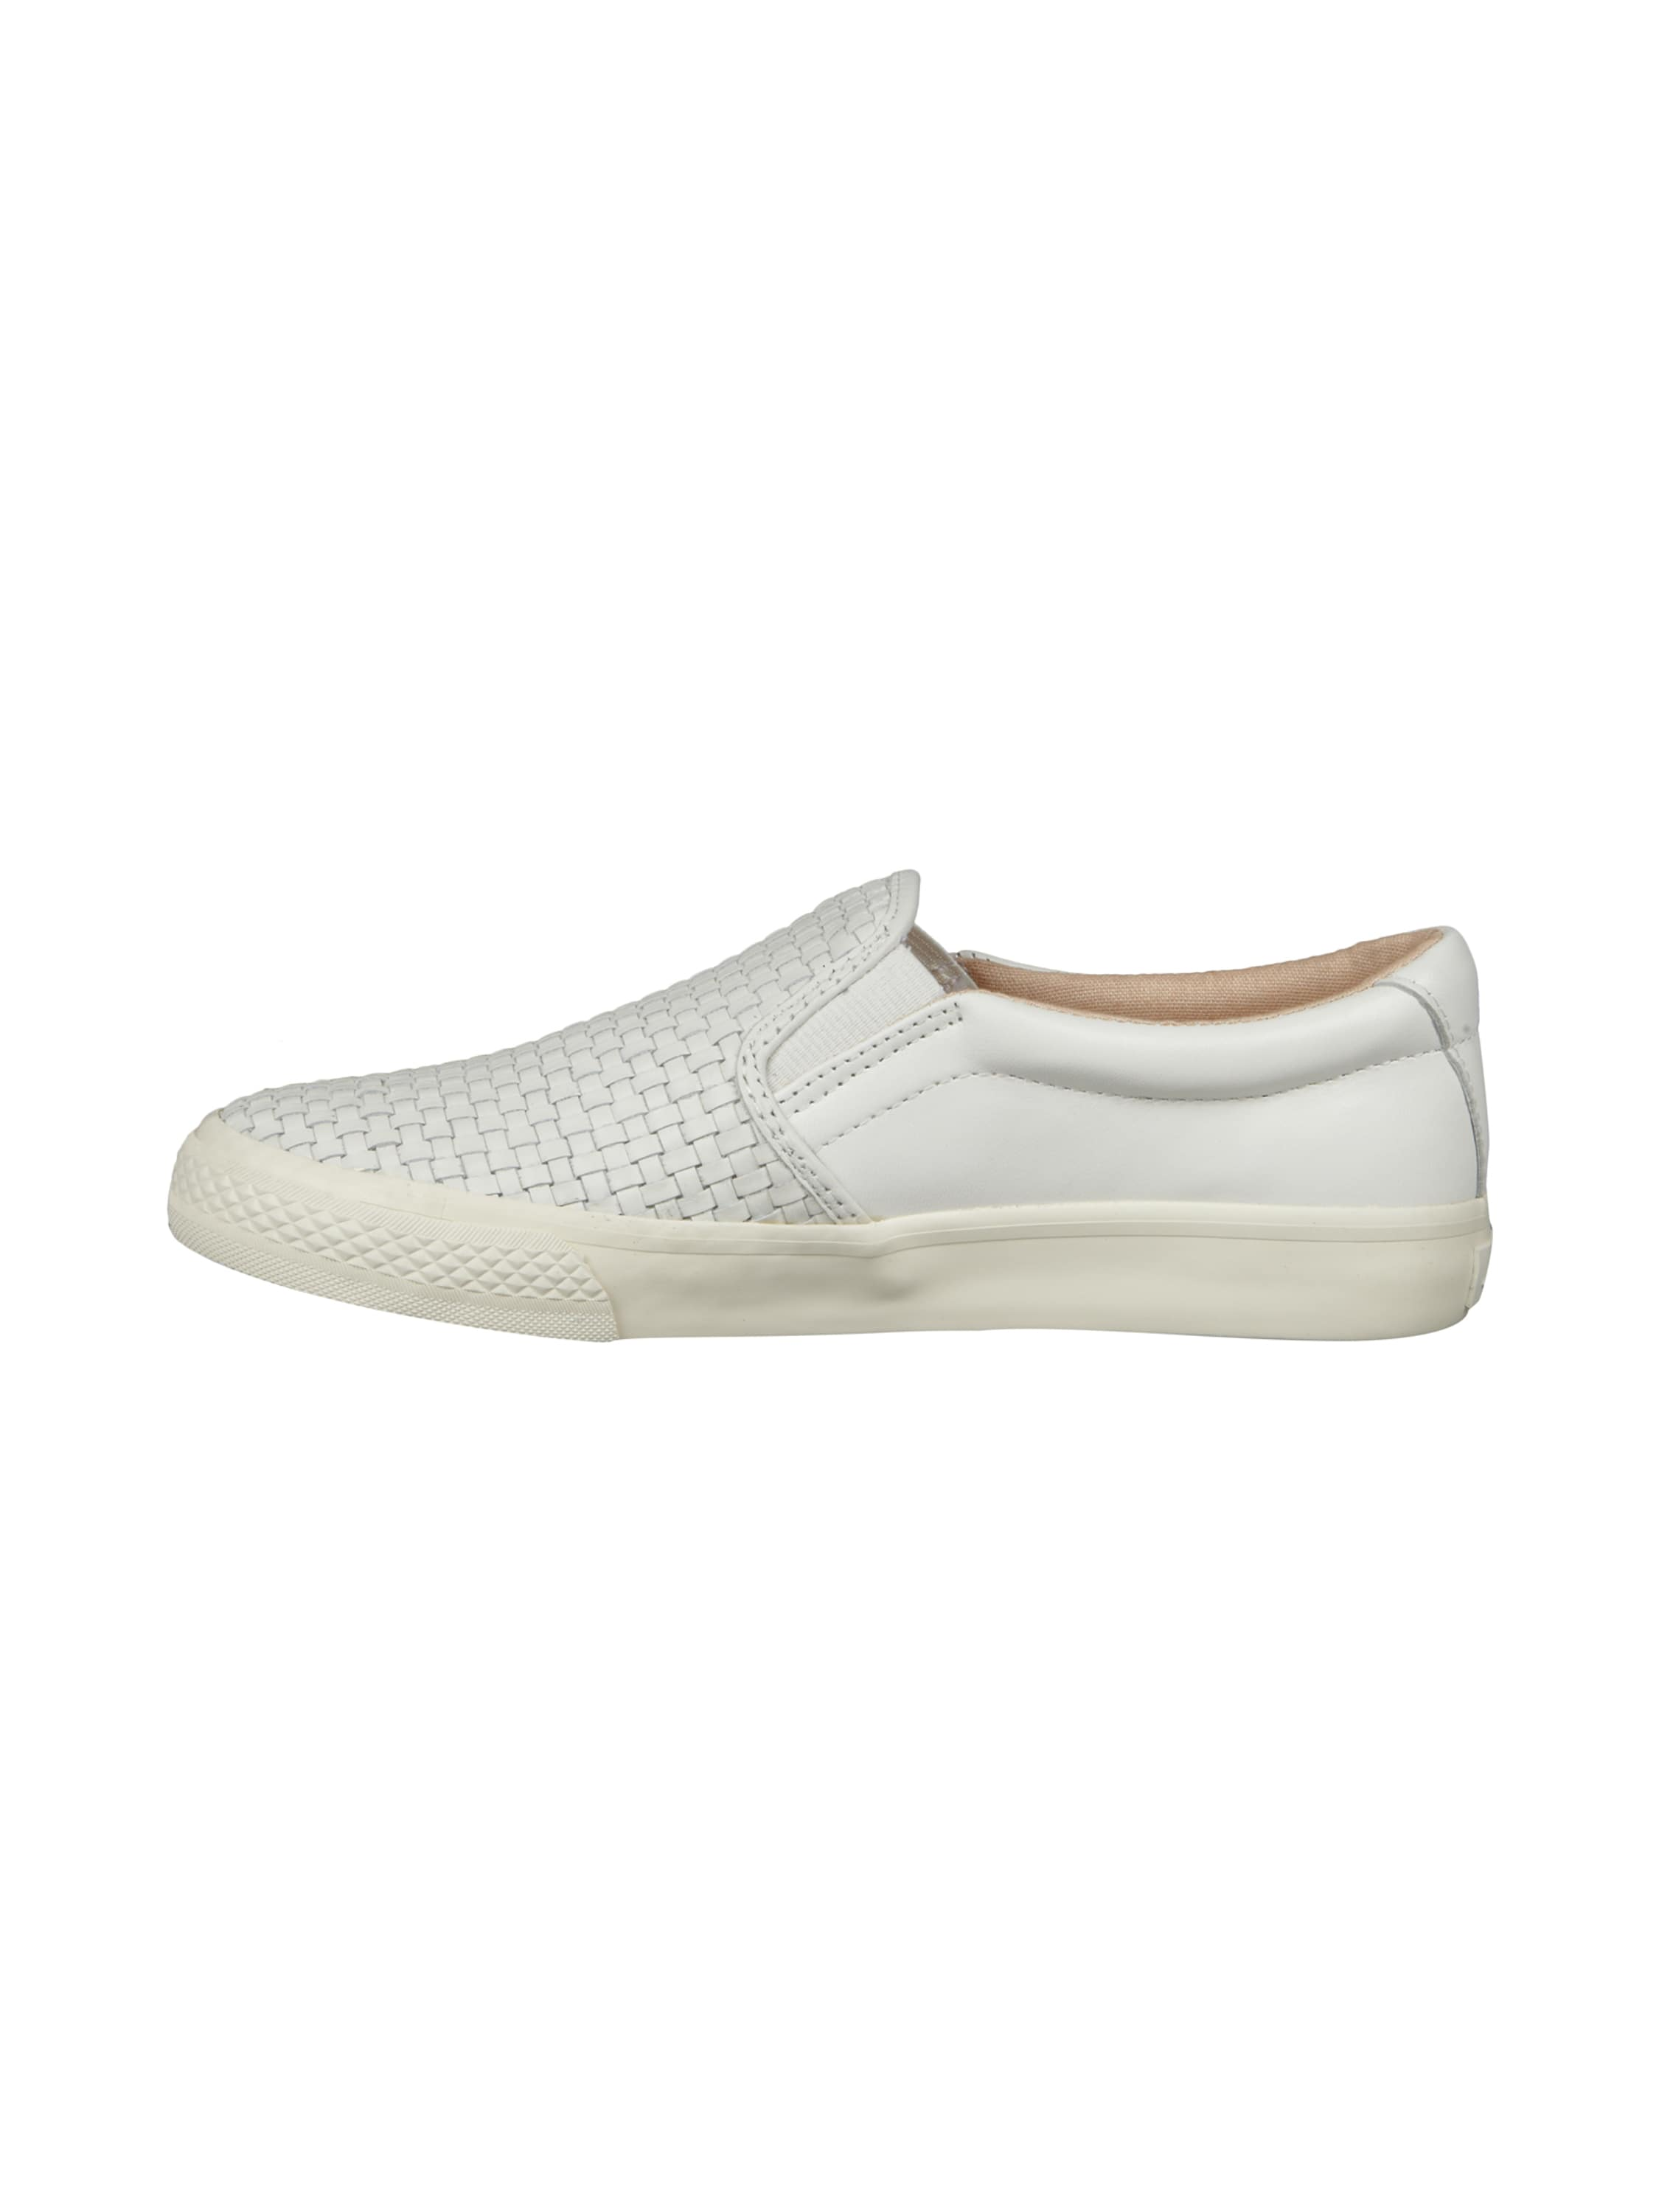 dkny slip on sneaker aus leder in wei online kaufen 9218601 p c online shop. Black Bedroom Furniture Sets. Home Design Ideas